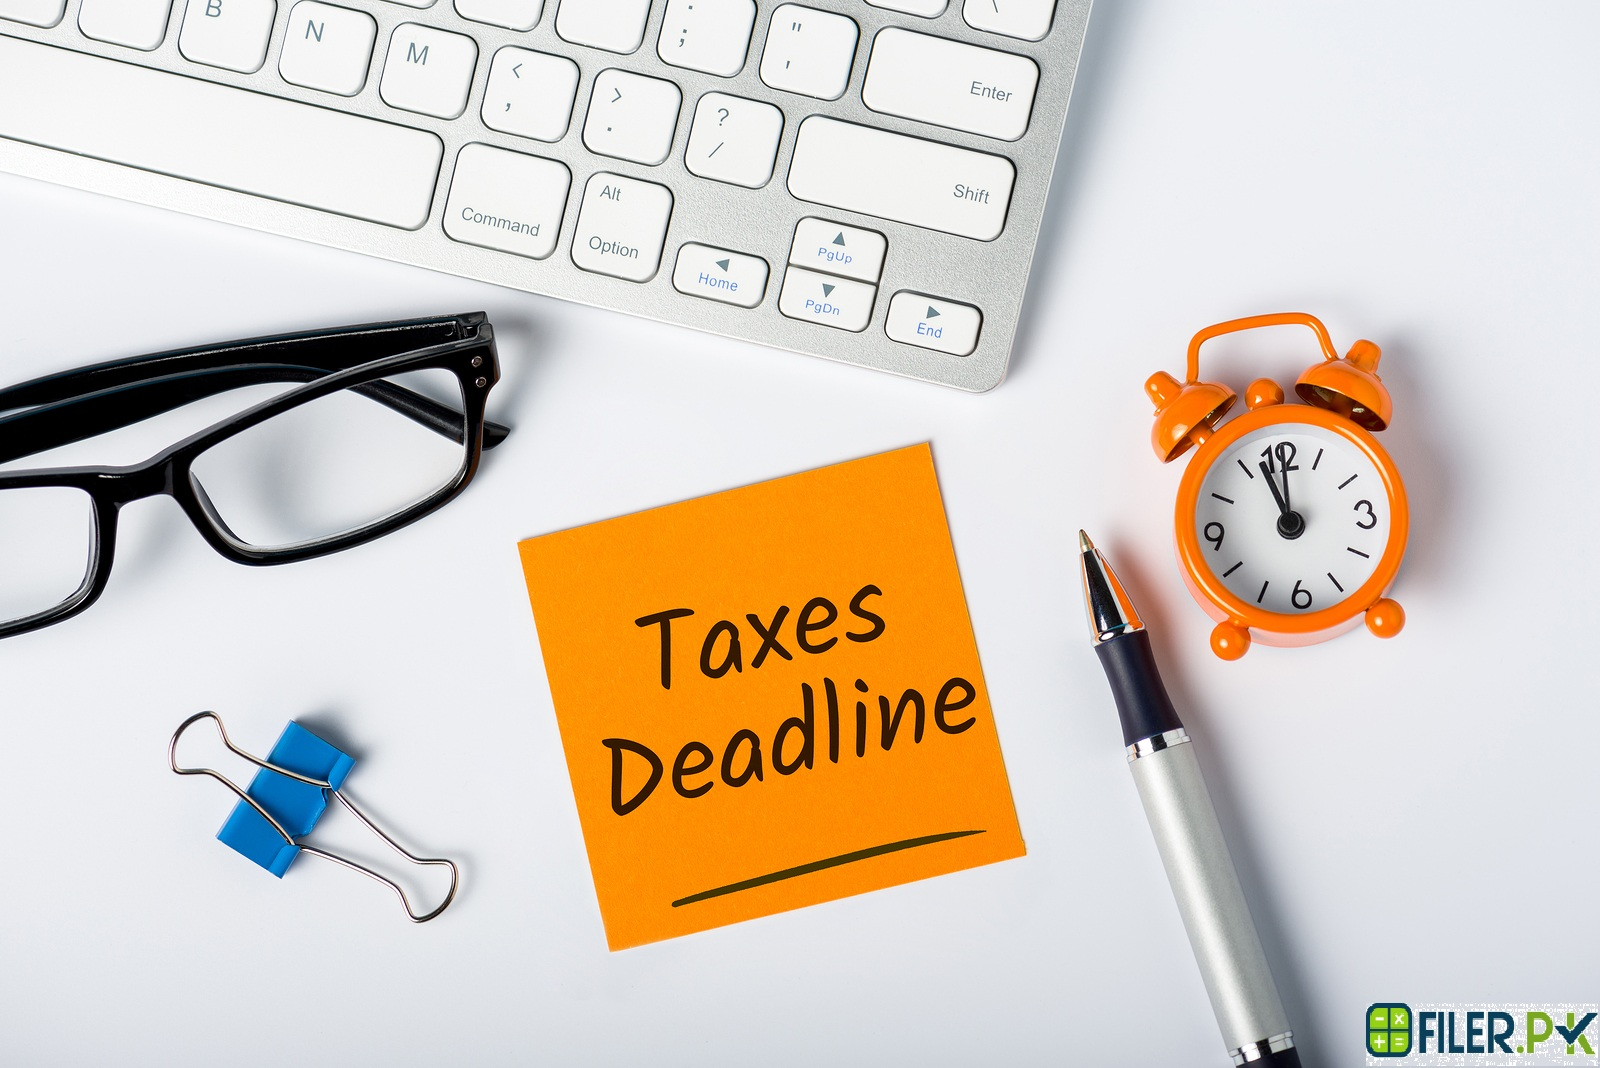 What are the consequences of missing tax deadline